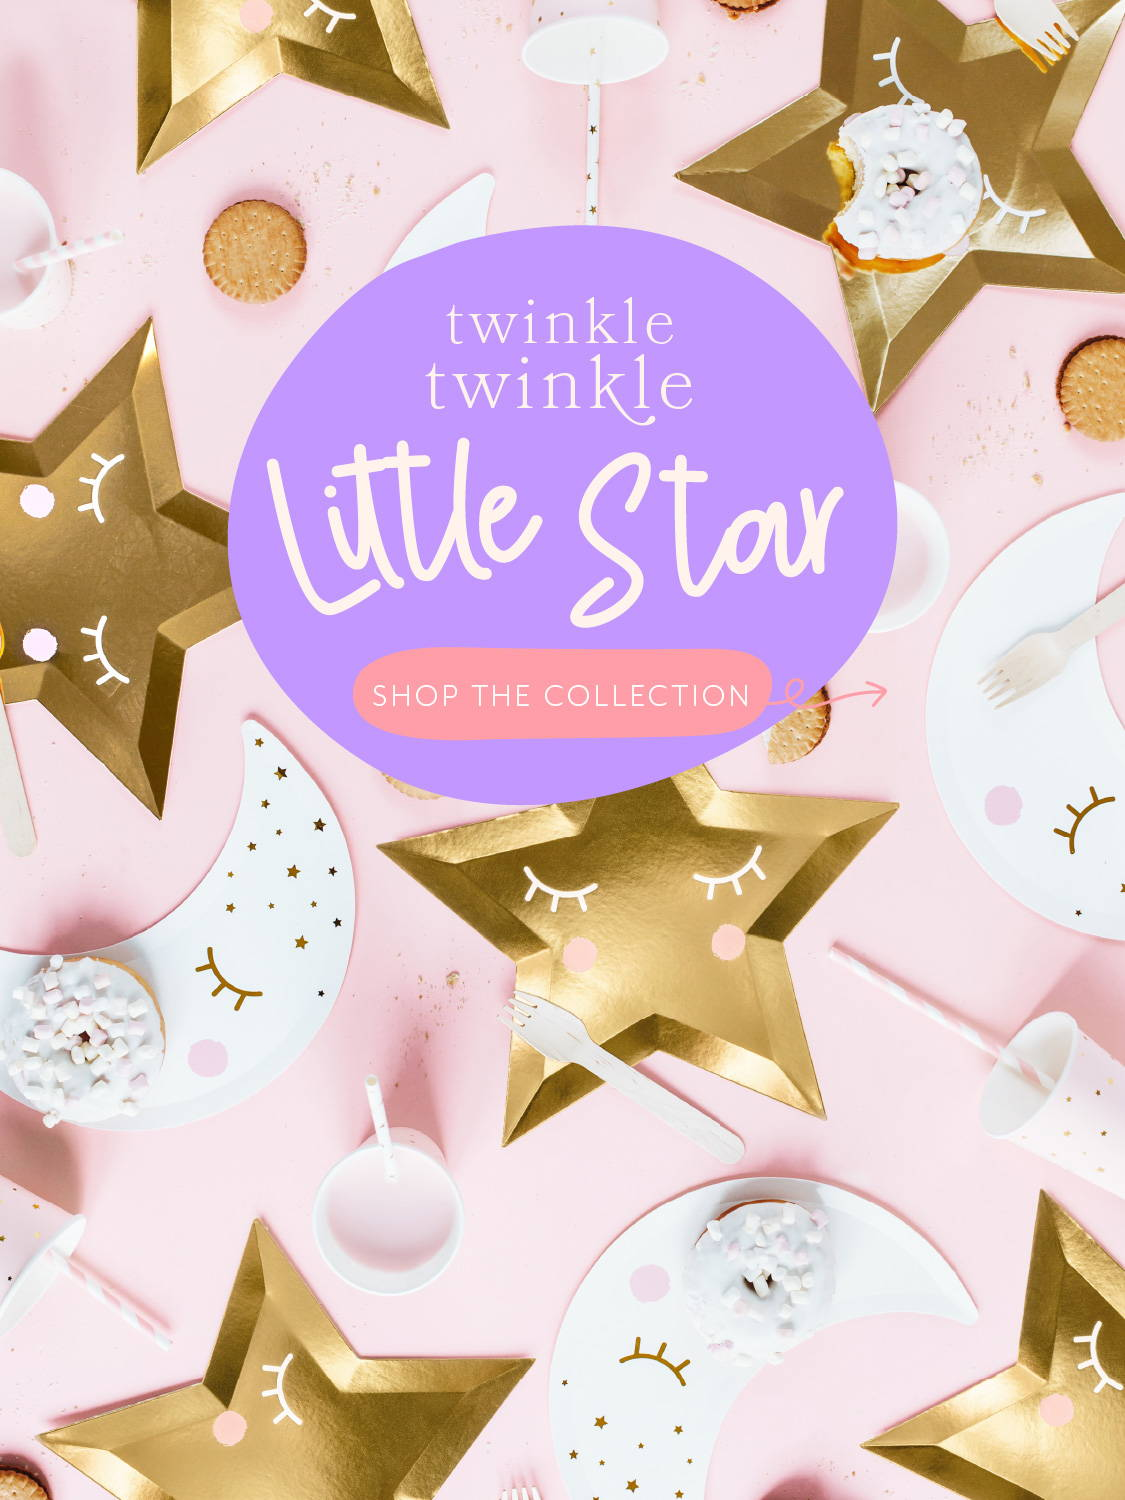 Hello Party Modern Stylish & Luxury Party Supplies Twinkle Twinkle Little Star Party Theme Baby Shower